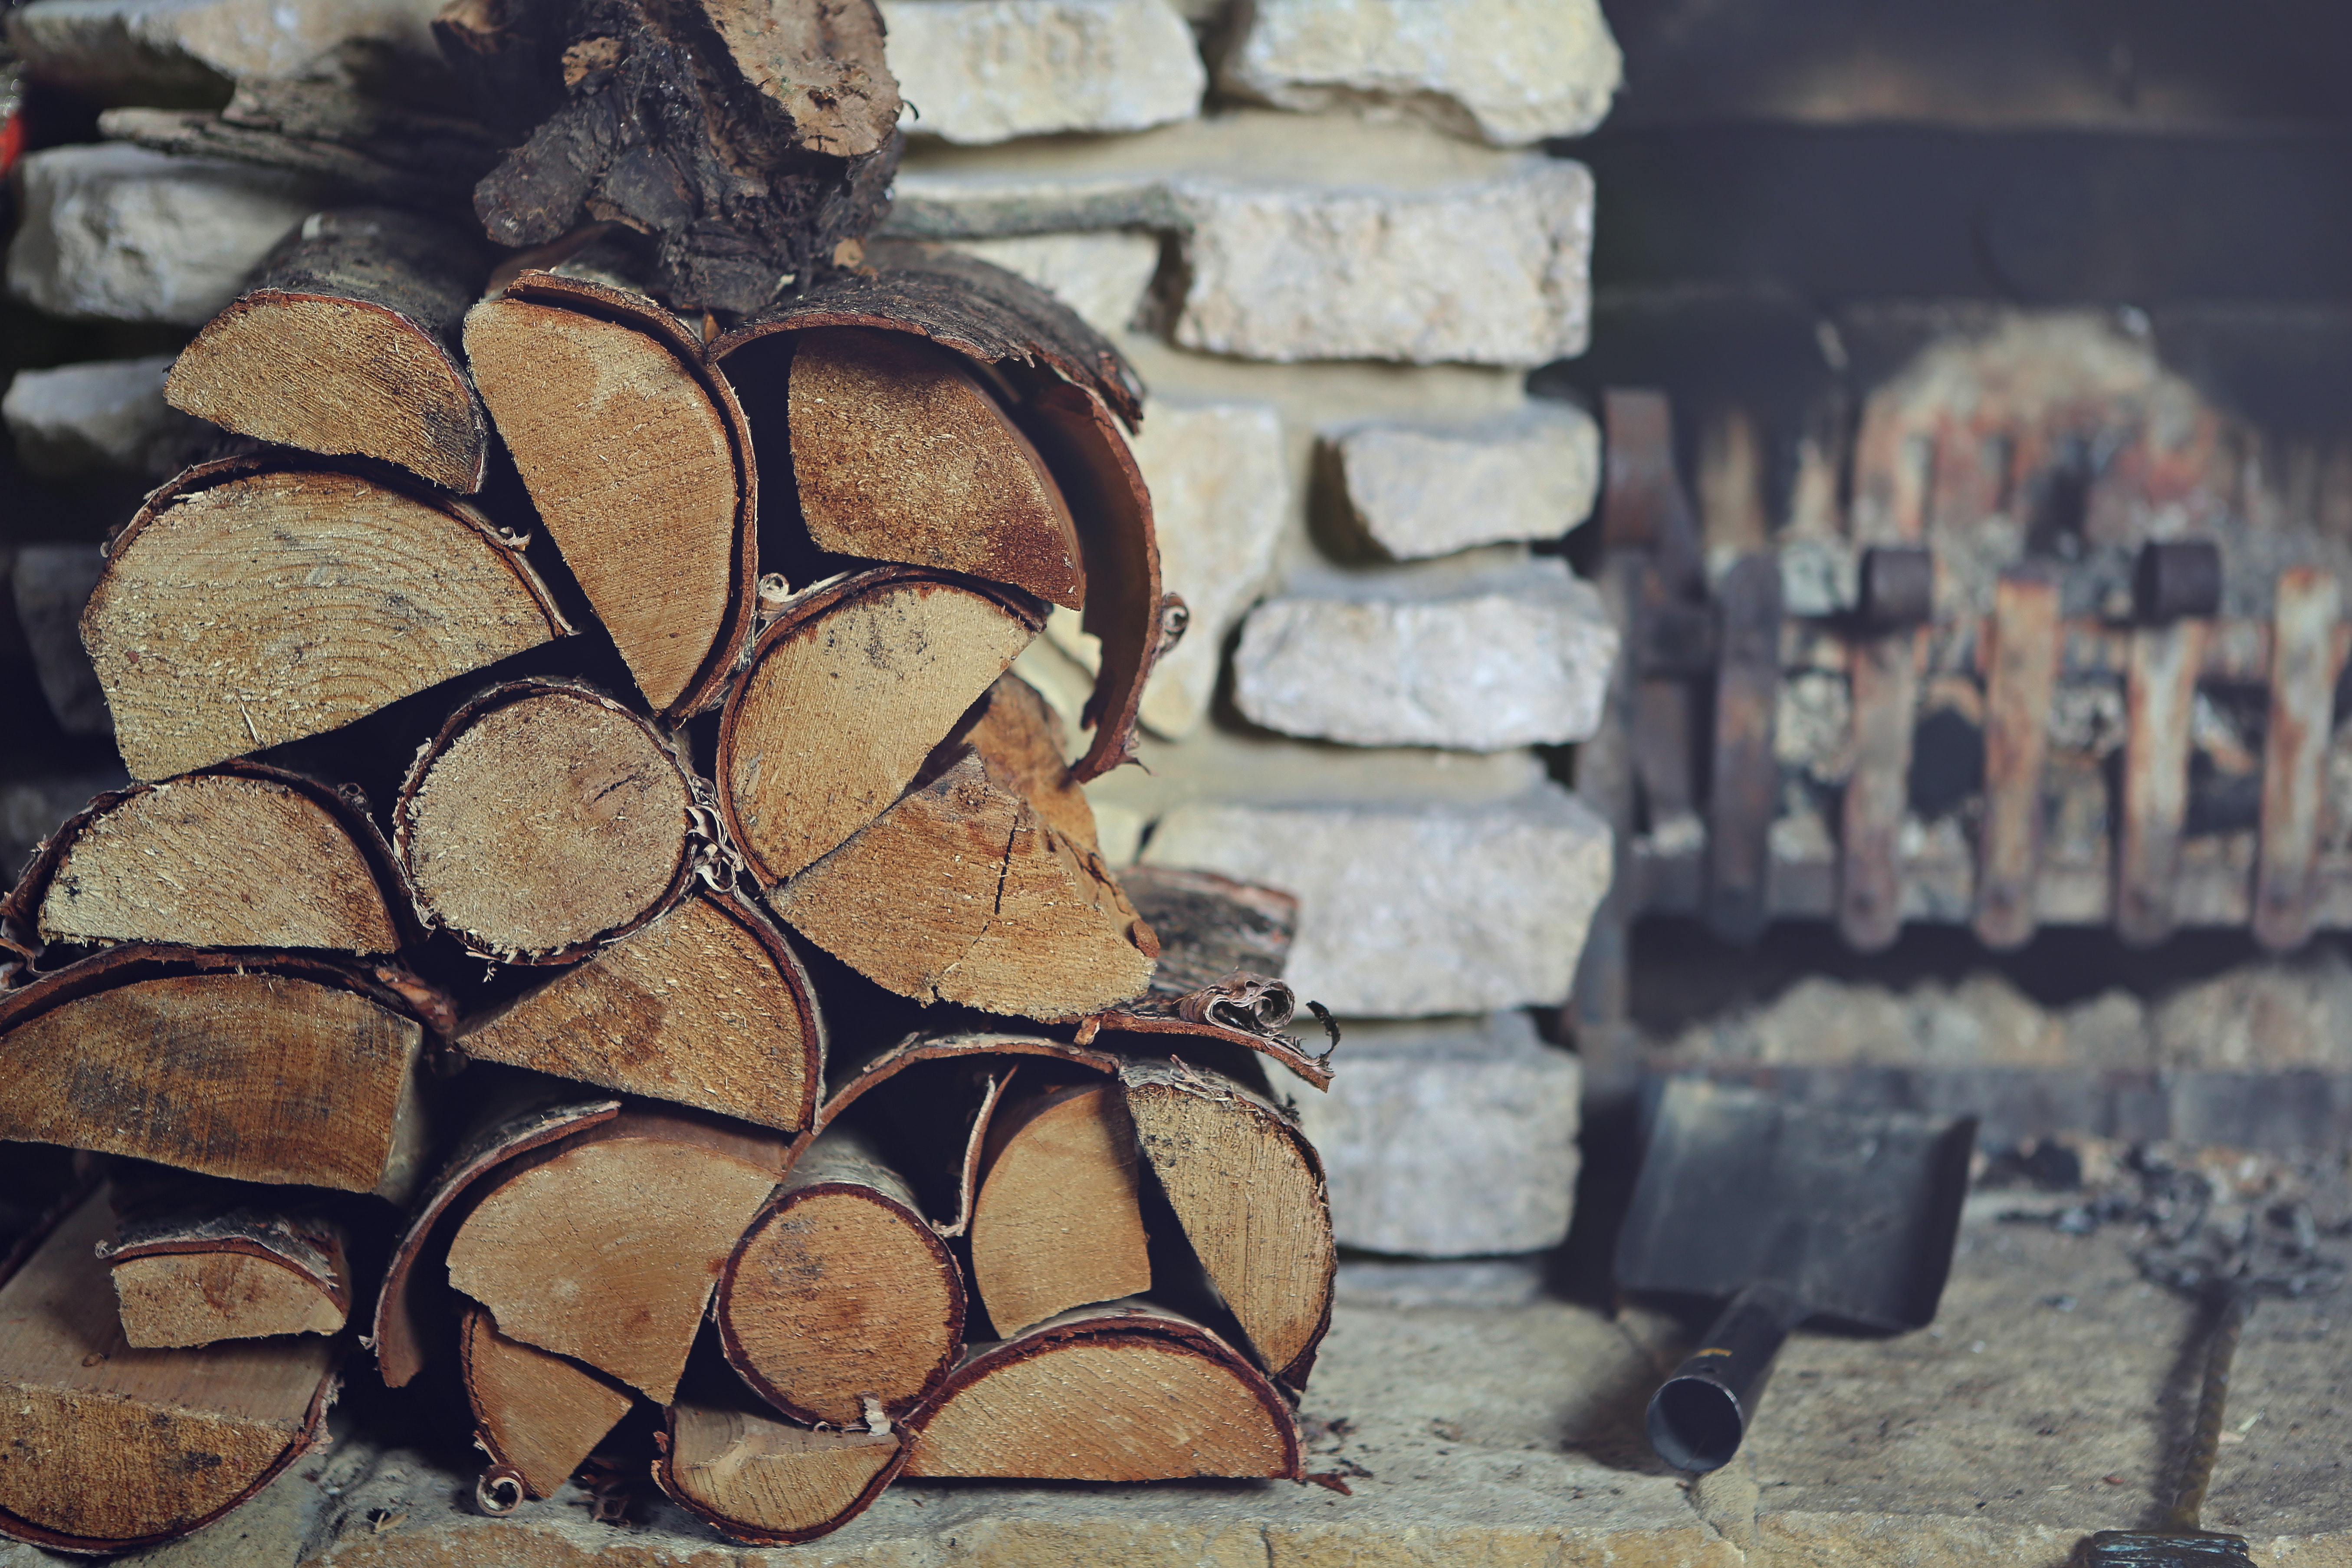 A stack of firewood next to a small fireplace